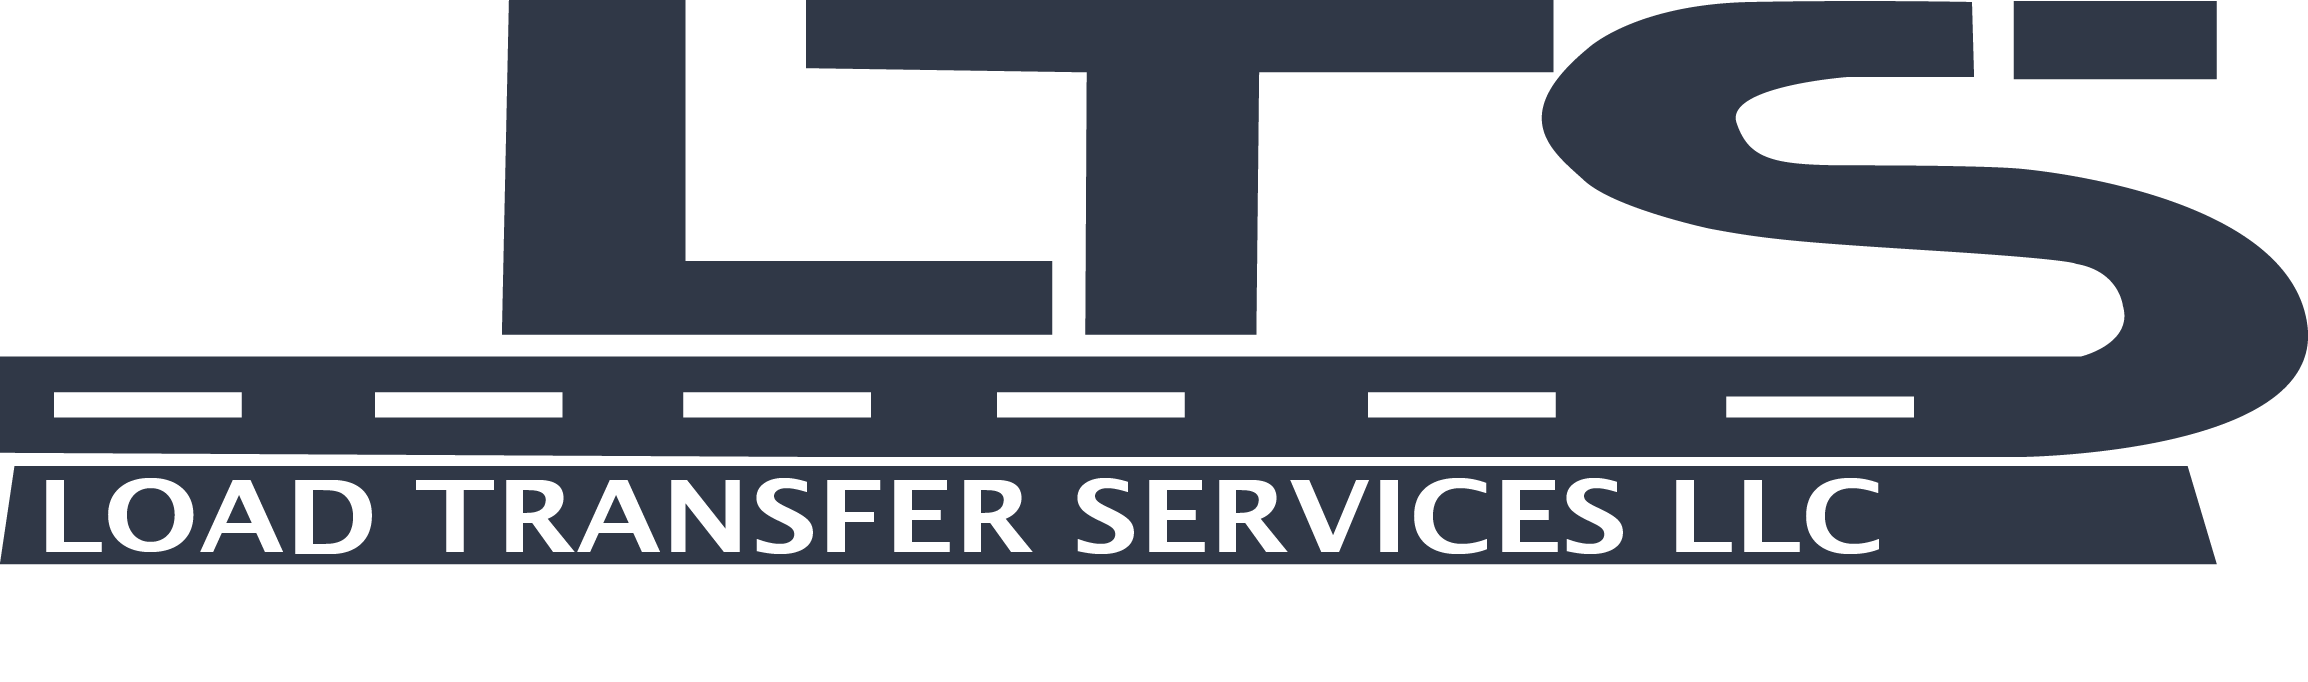 Load Transfer Services